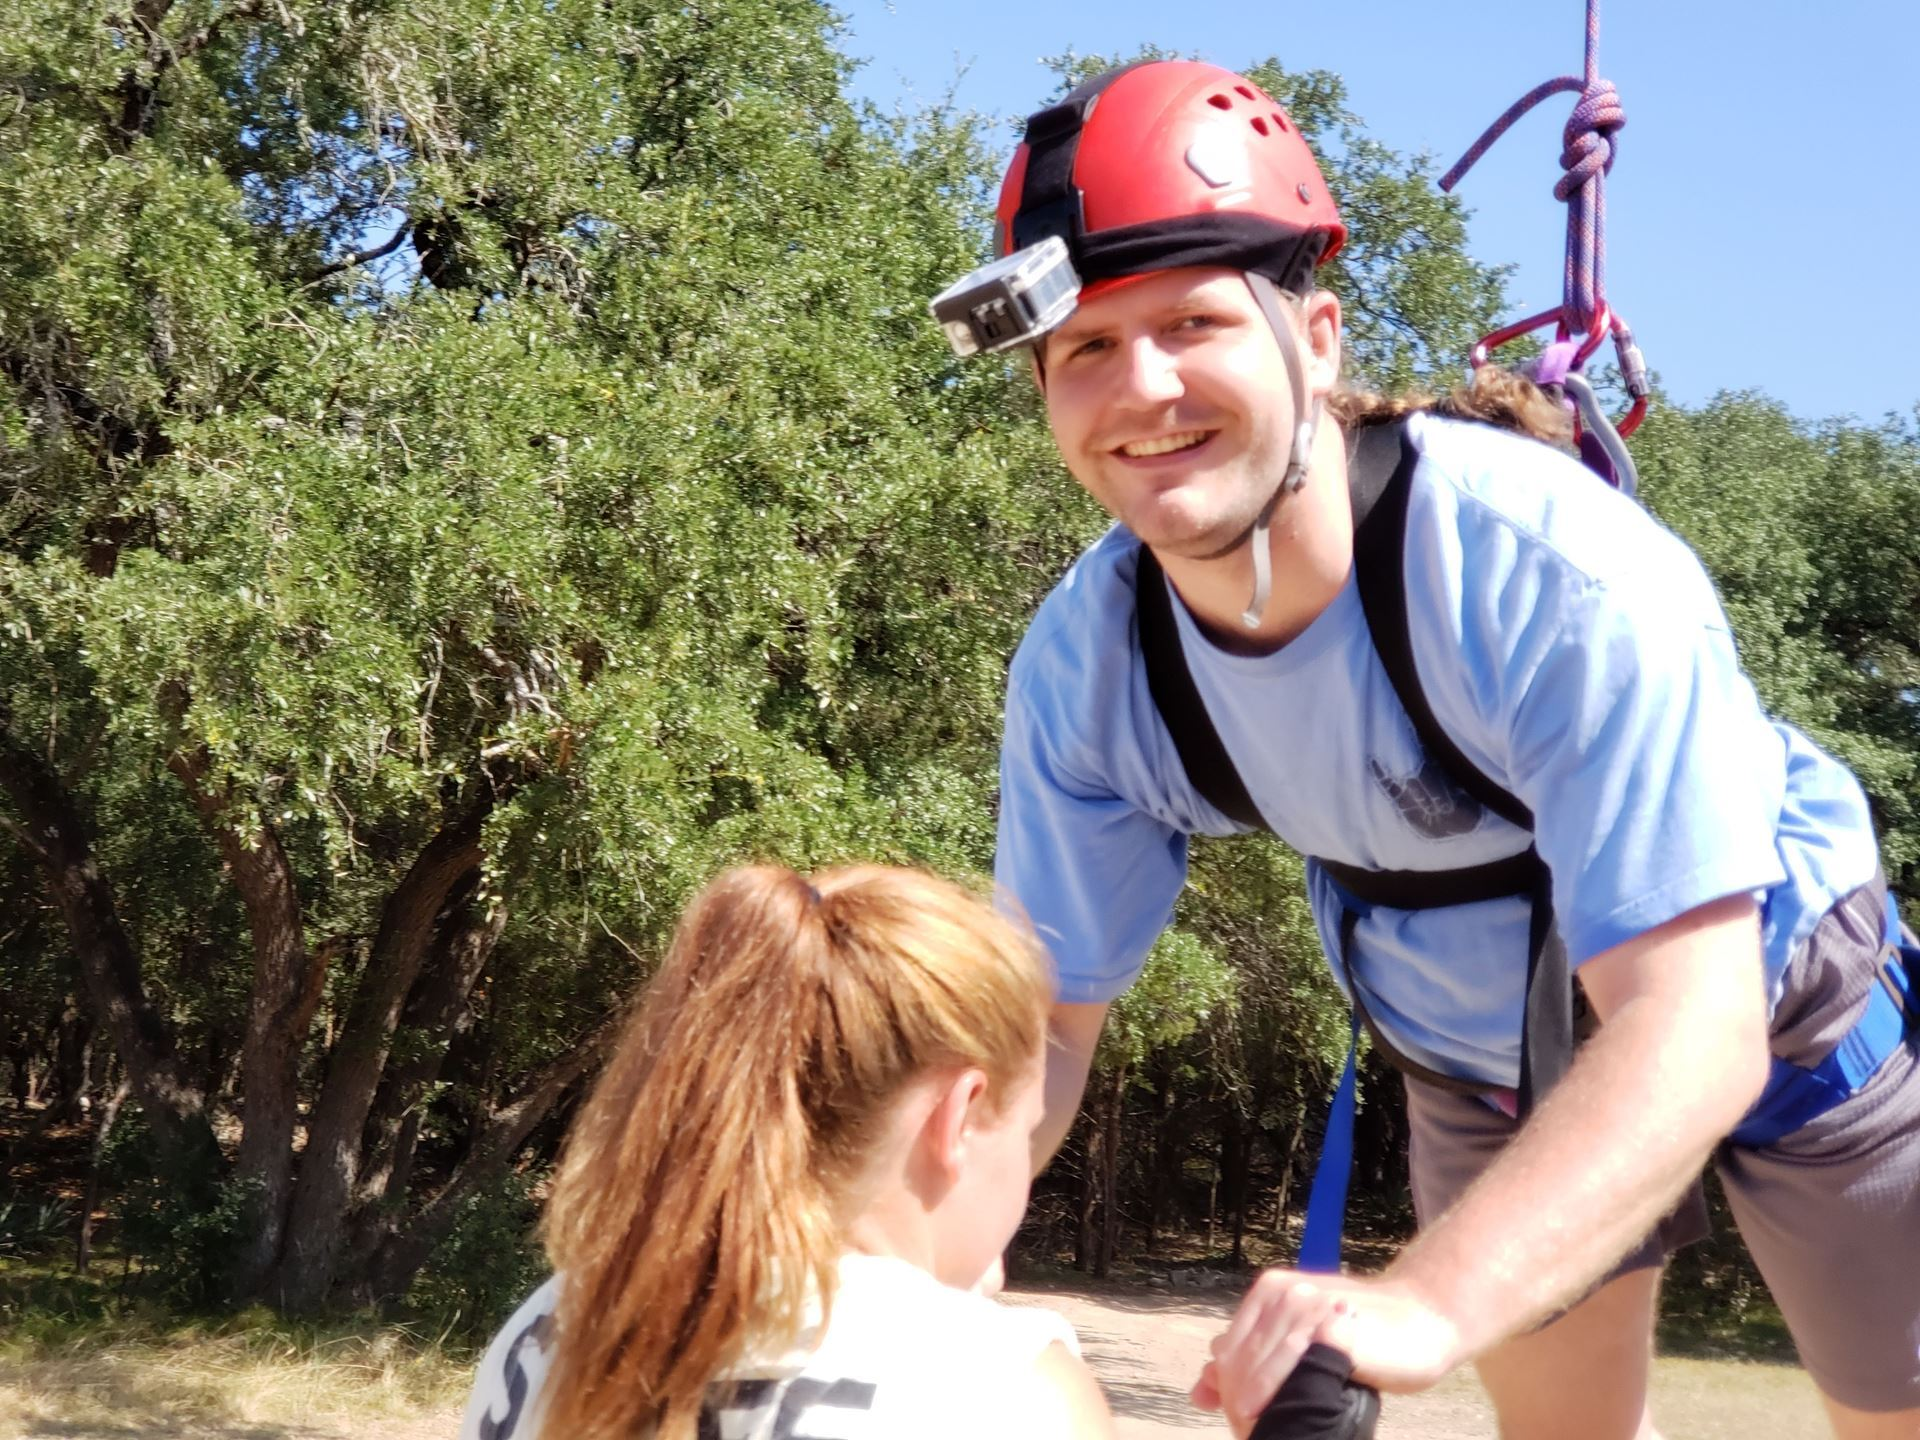 Patrick Vellia hangs, smiling, near trees in a belay harness and red helmet, after jumping off a 40-ft telephone pole platform. Camp Staff guide him to open ground to demonstrate the experience in PT to the next brave soul.